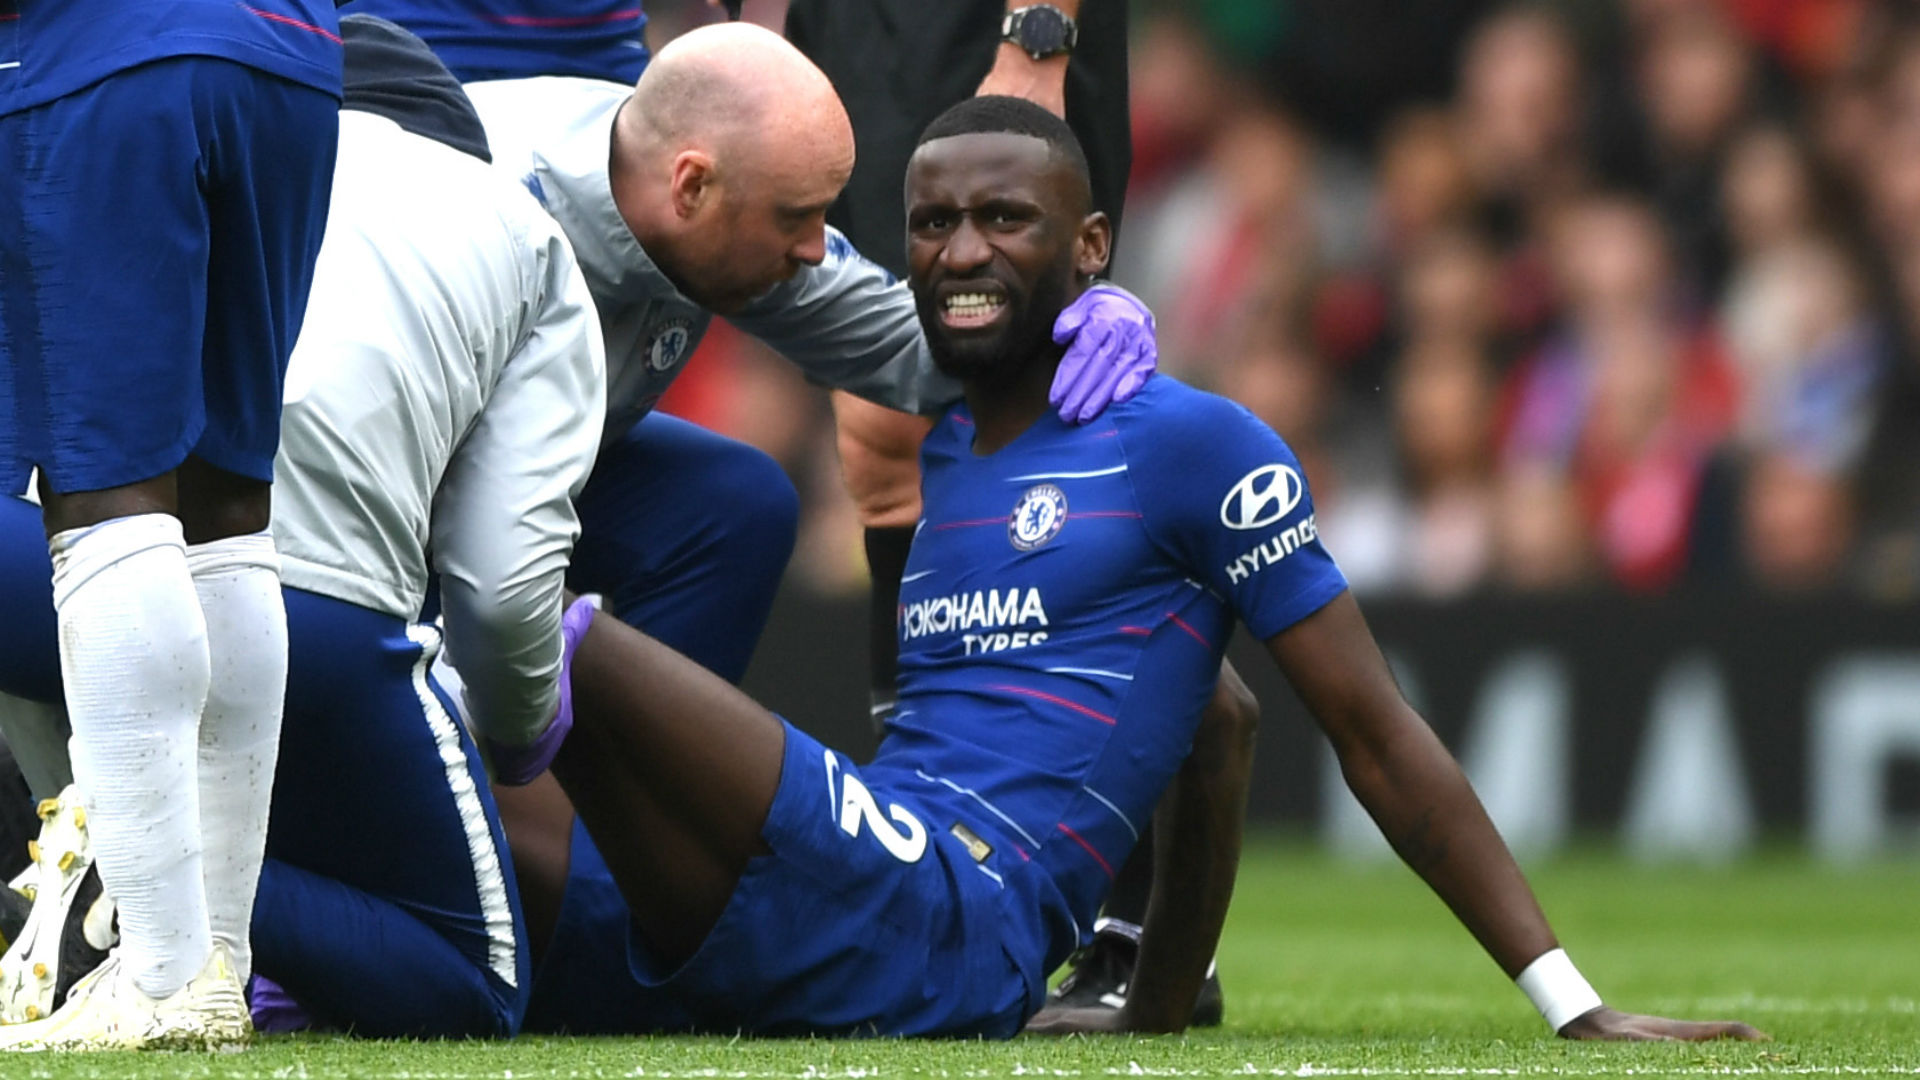 Rudiger ready to return from injury, confirms Chelsea boss Lampard